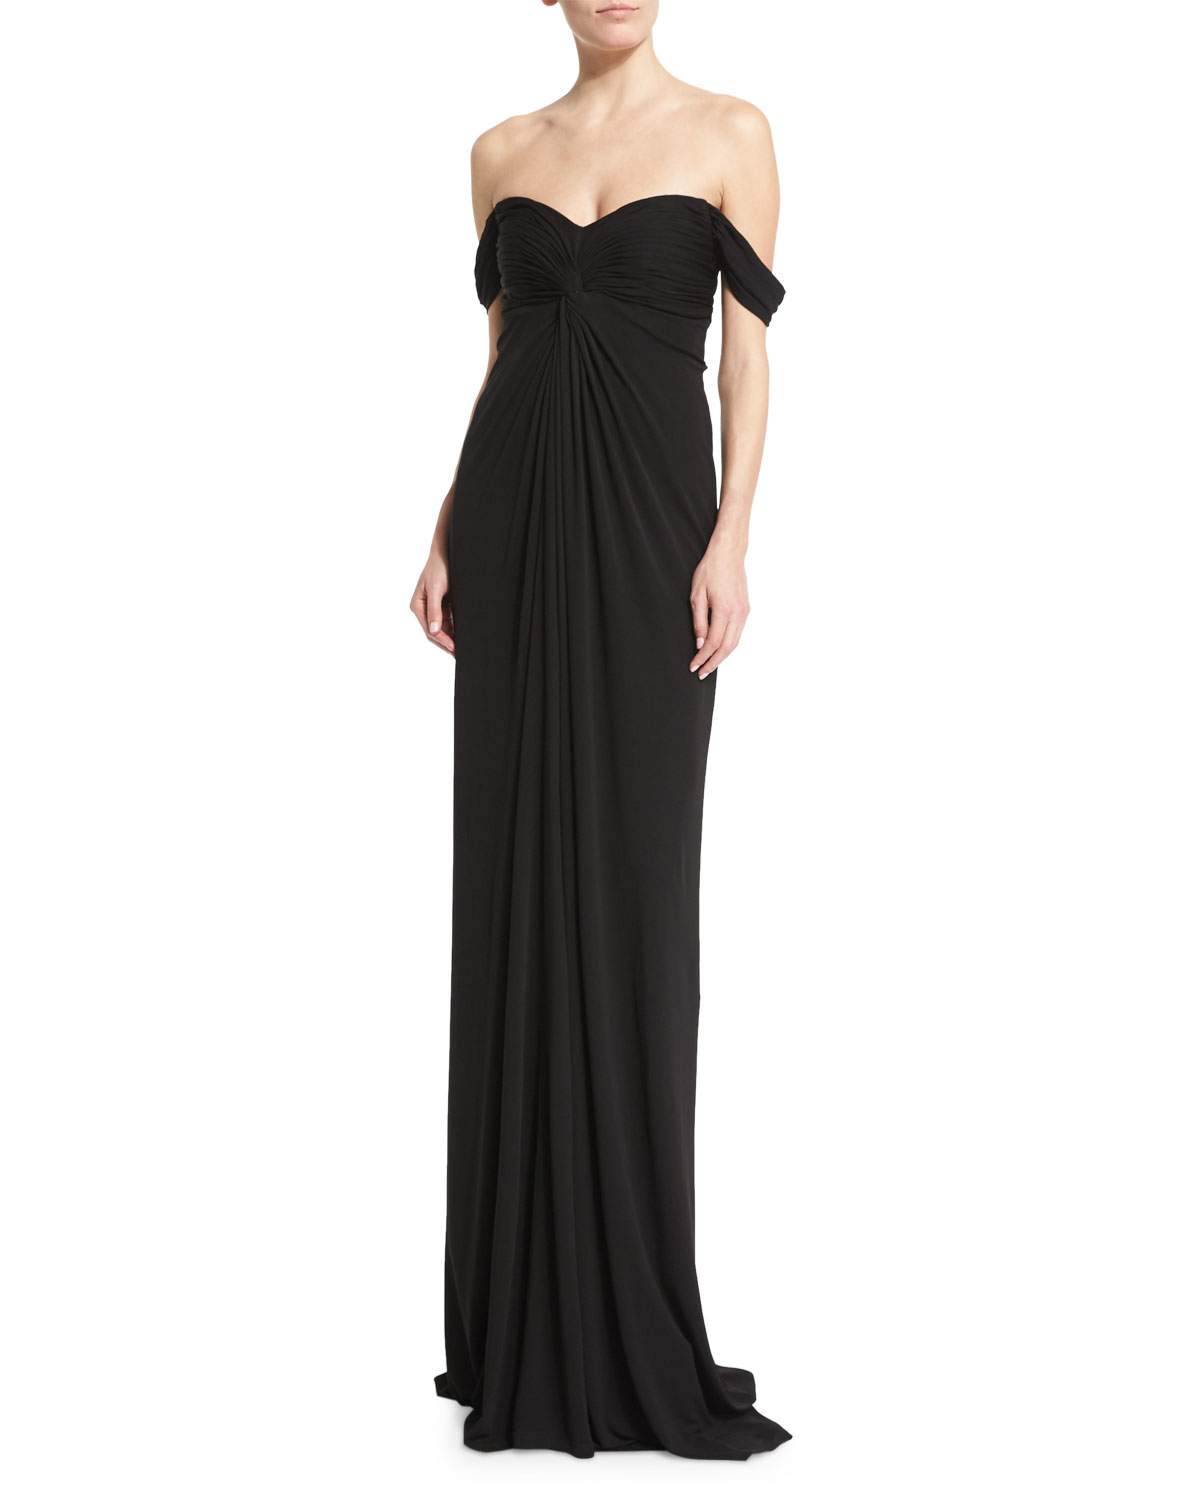 Lyst - David Meister Off-the-shoulder Jersey Column Gown in Black